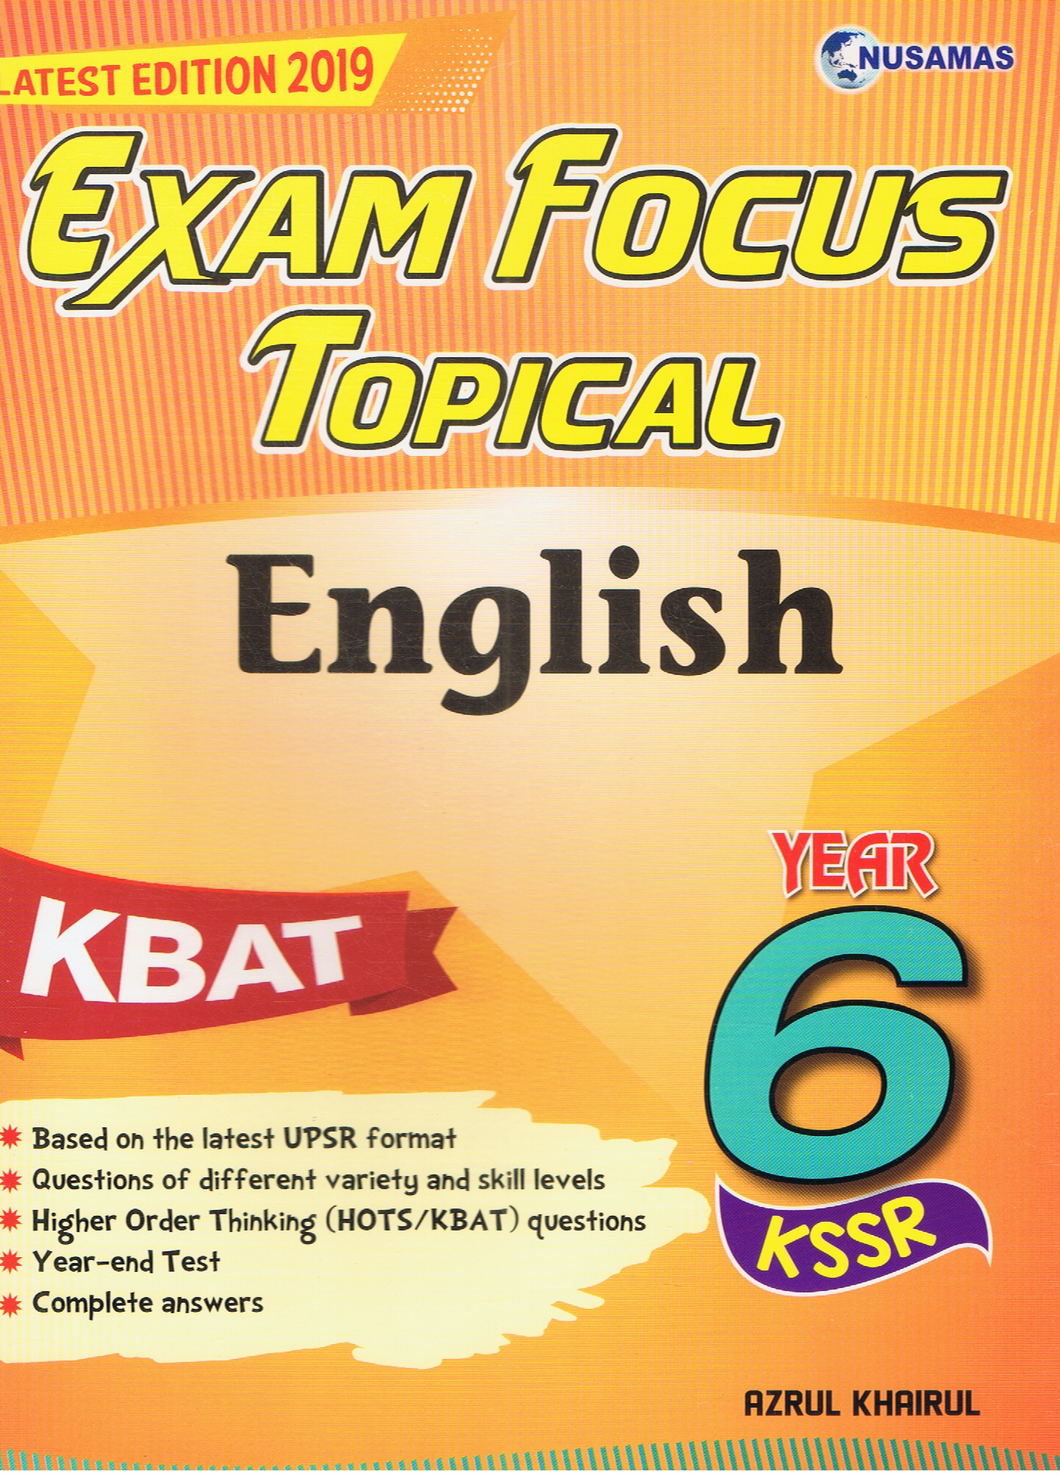 Exam Focus Topical: English Year 6